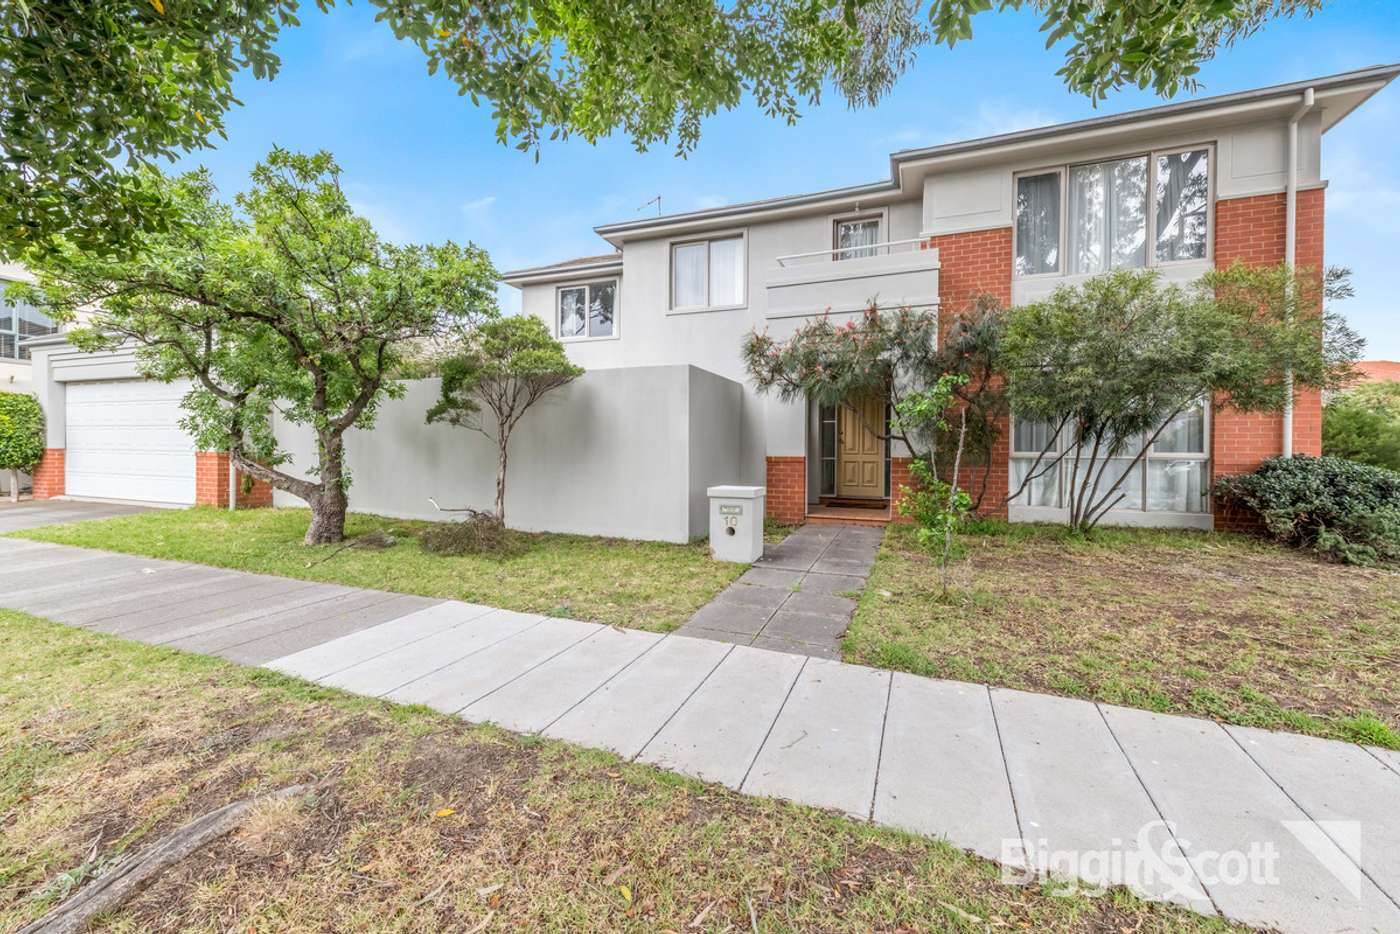 Main view of Homely house listing, 10 Swallow Street, Port Melbourne VIC 3207